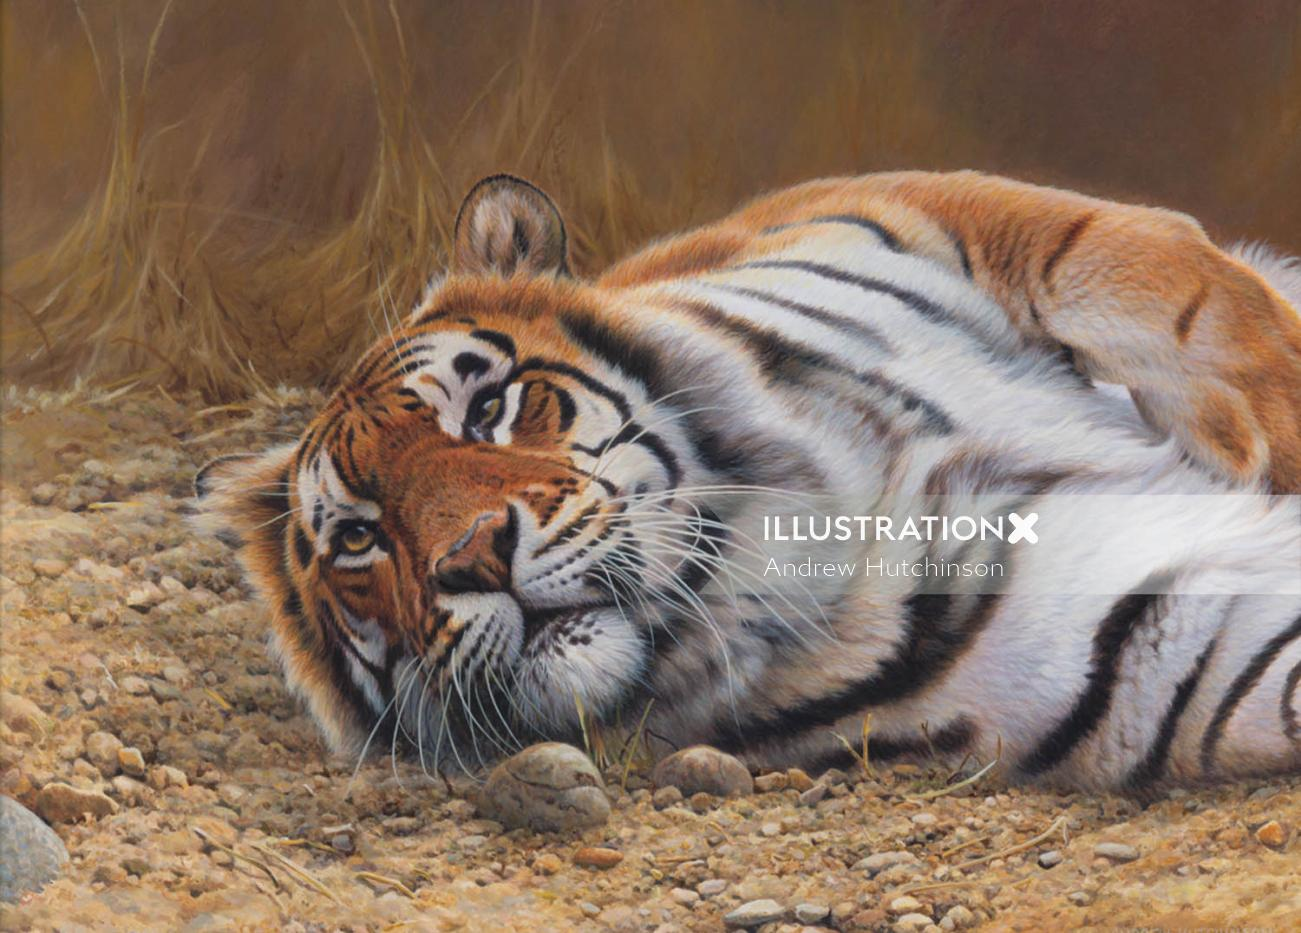 Tiger Resting Illustration, Wildlife Images © Andrew Hutchinson